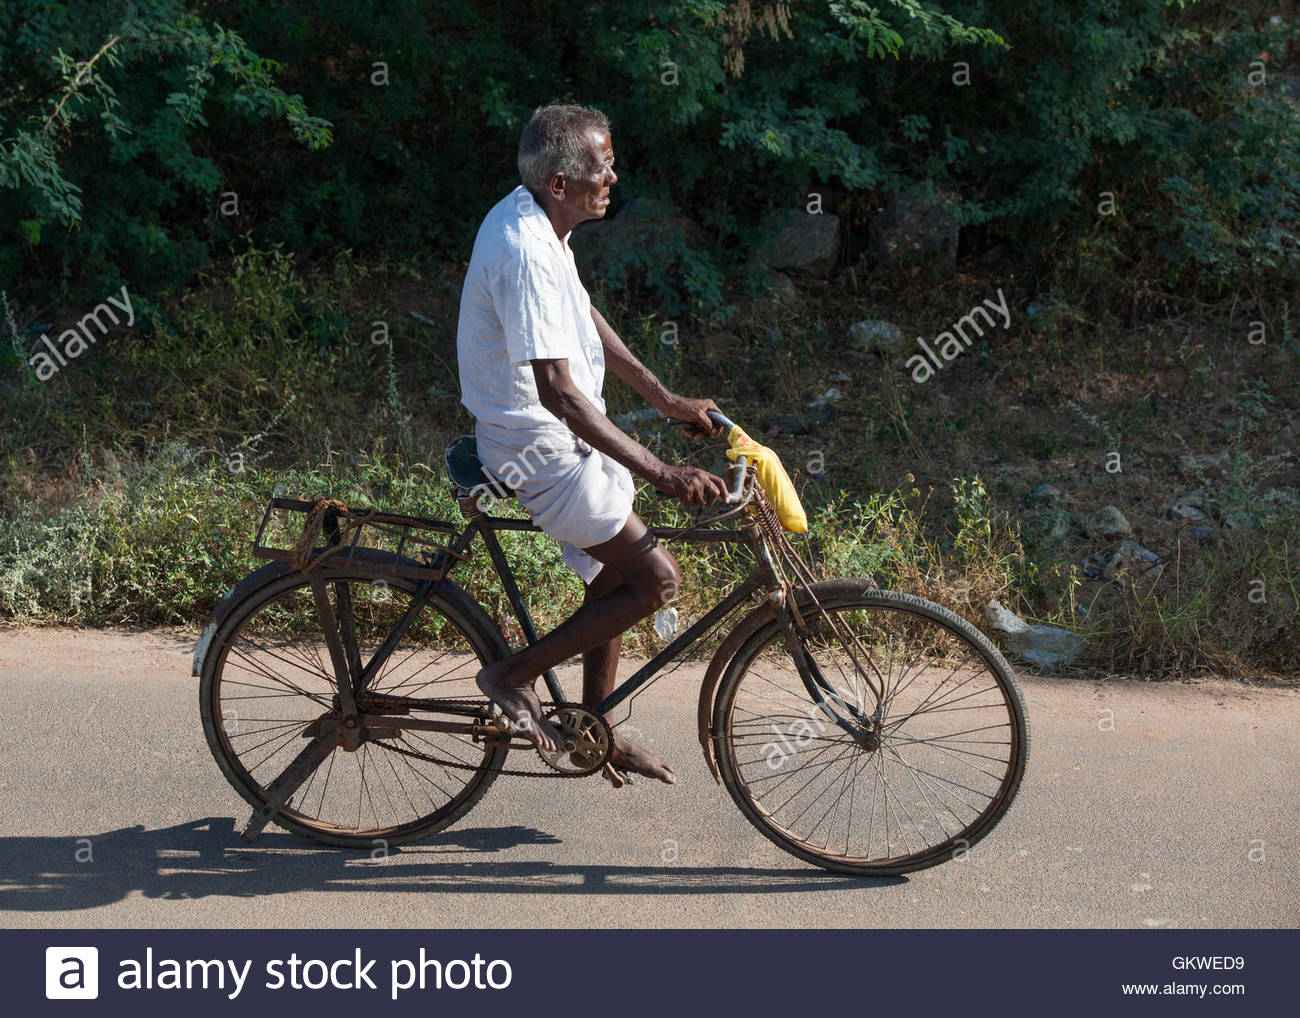 Old Indian Bicycle Stock Photos Amp Old Indian Bicycle Stock